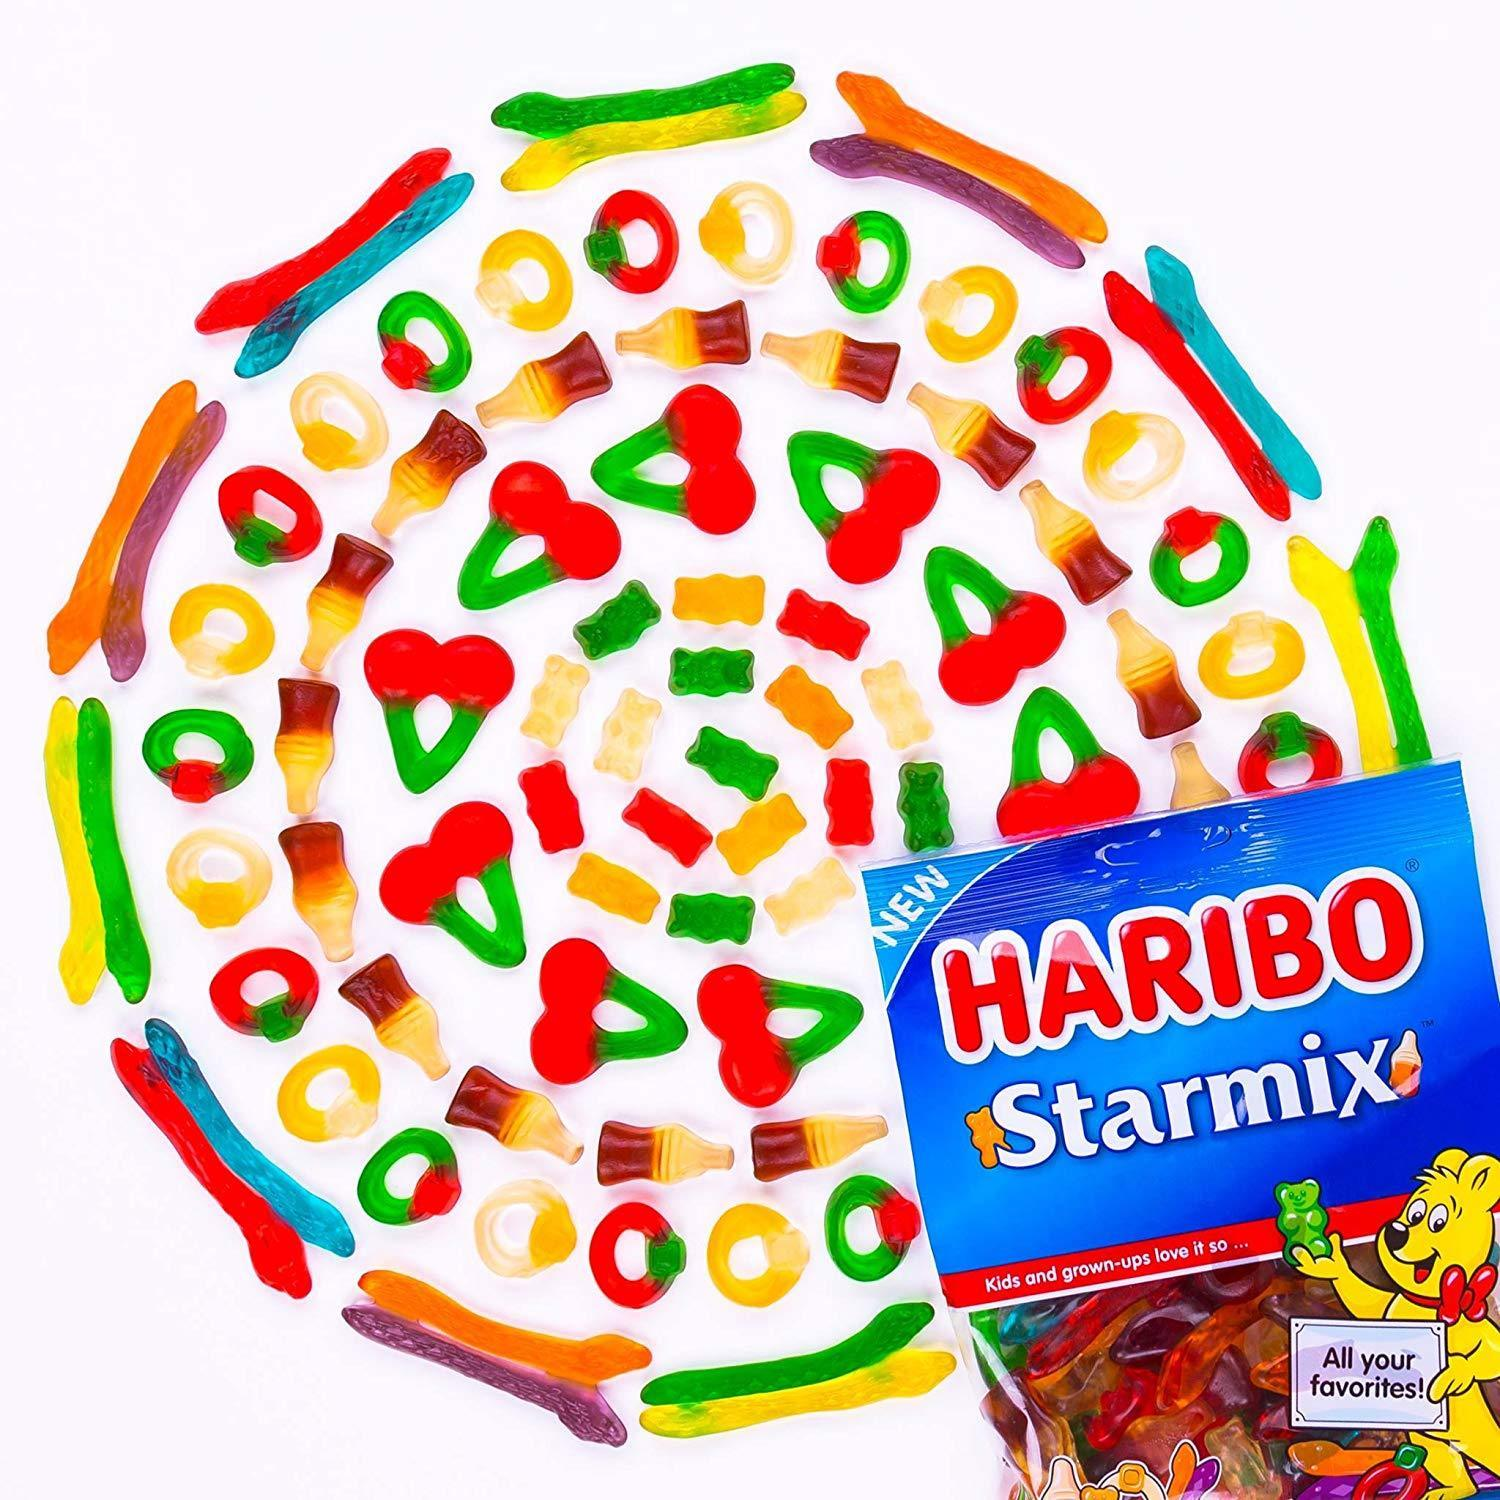 Haribo Starmix Gummi Candy, 8oz Bag